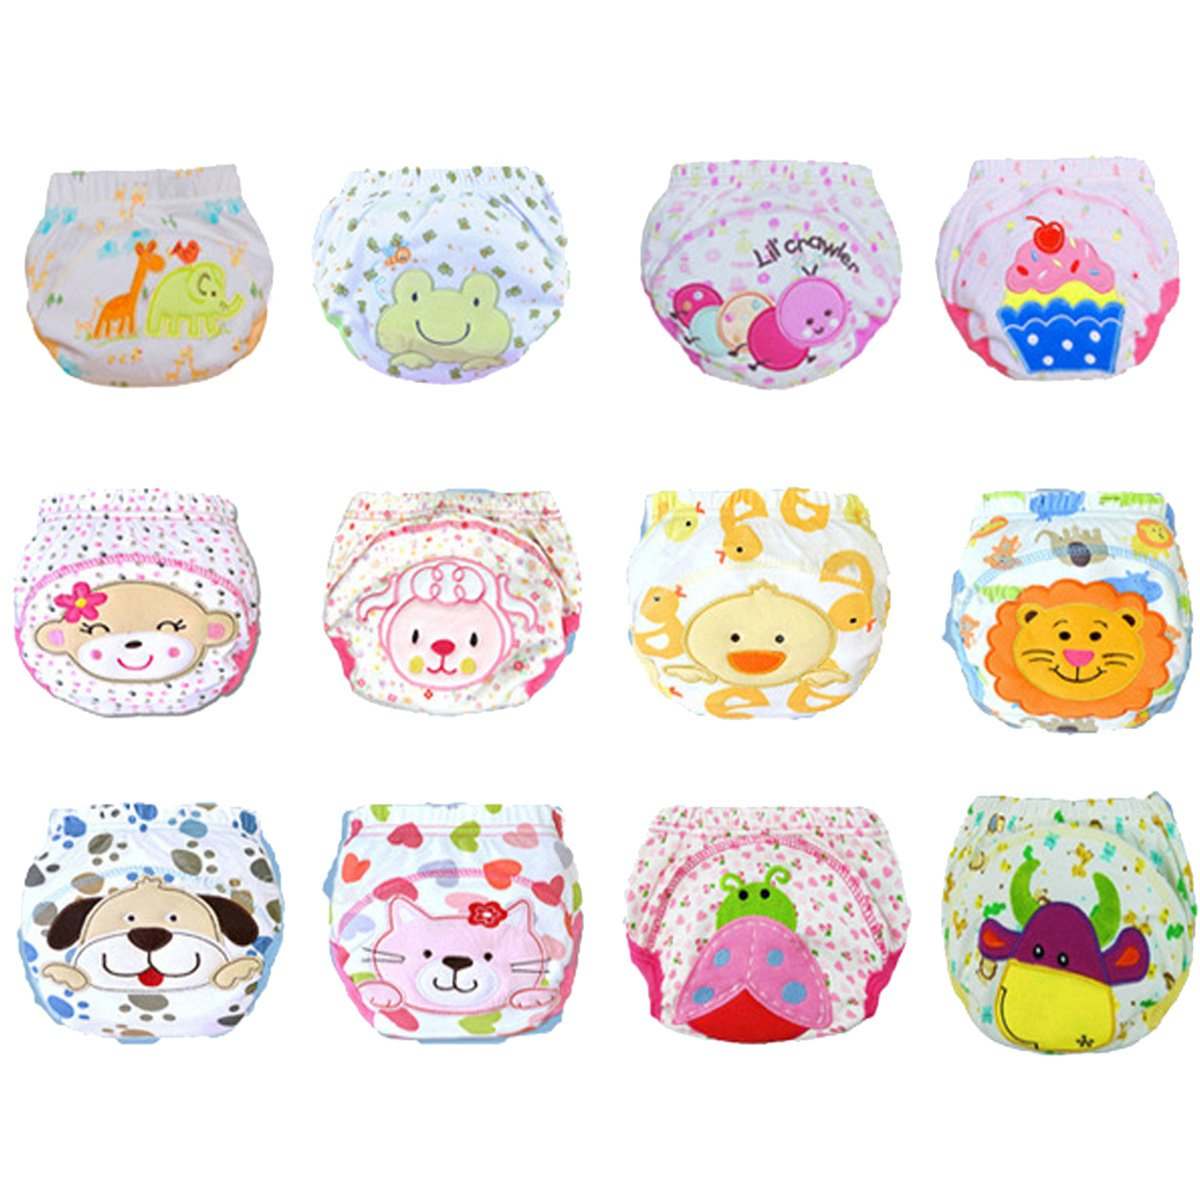 Aubig 12 Pcs Baby Boys Girls Toddler Toilet Pee Potty Training Pants Cartton Underwear Size S